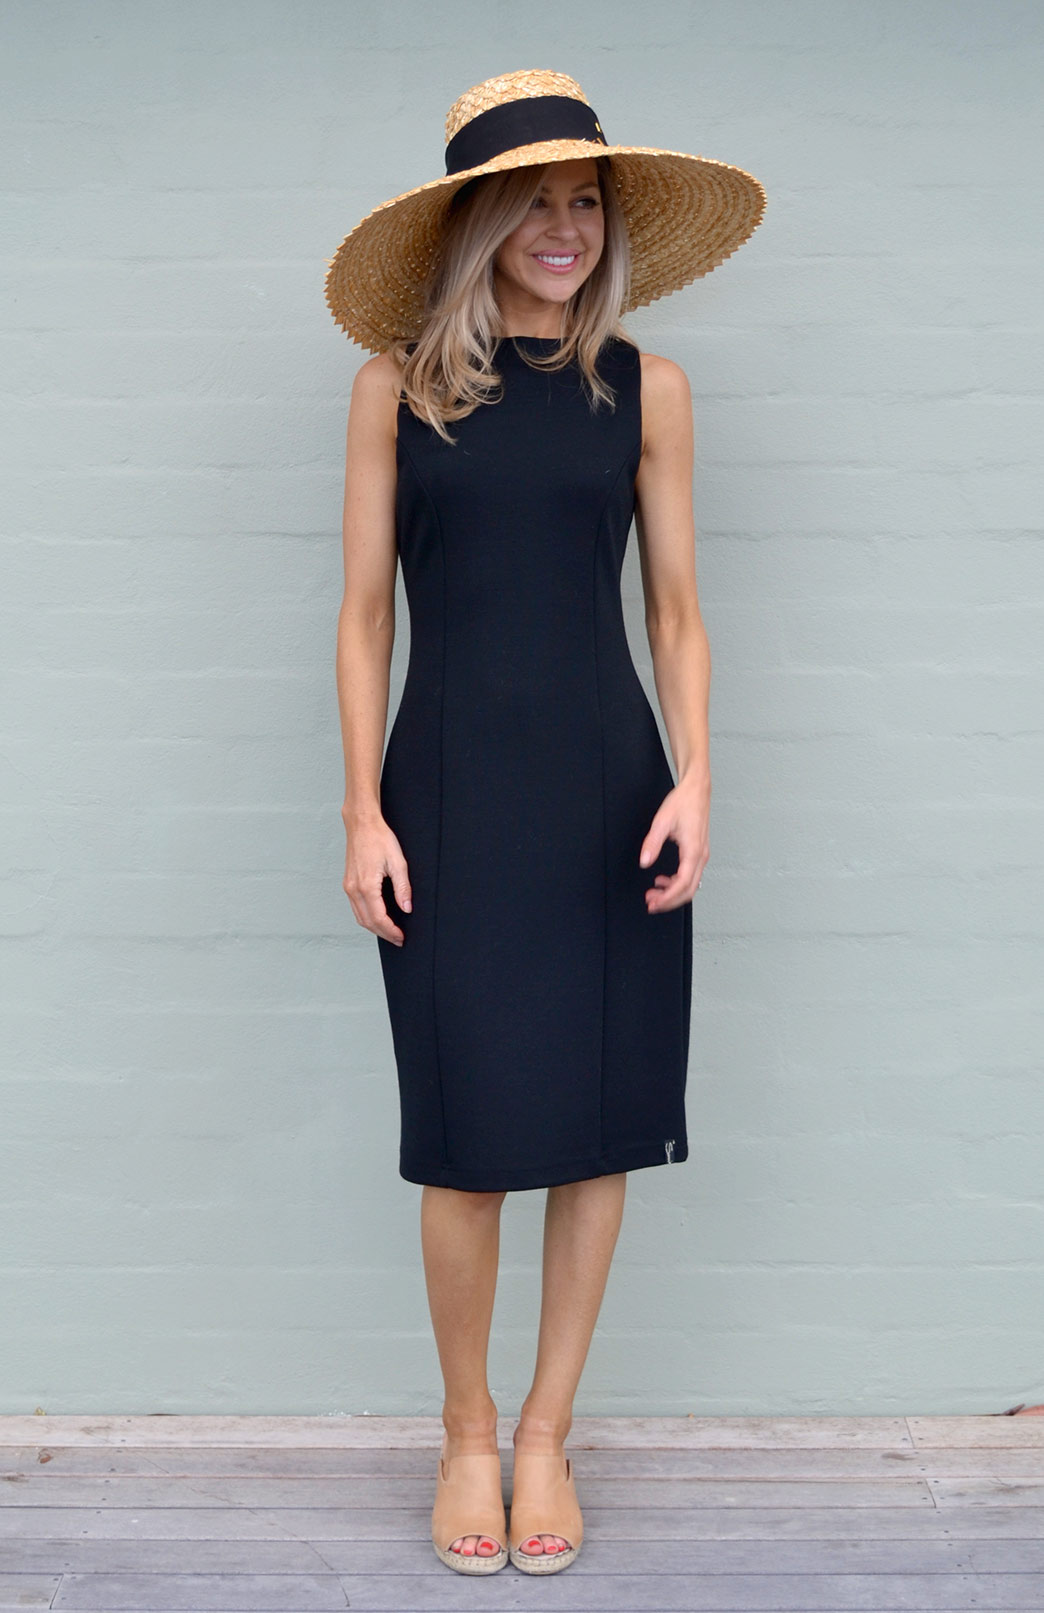 Missi Dress - Women's Black Merino Wool Ponte Dress with Full Back Zip and High Neckline - Smitten Merino Tasmania Australia